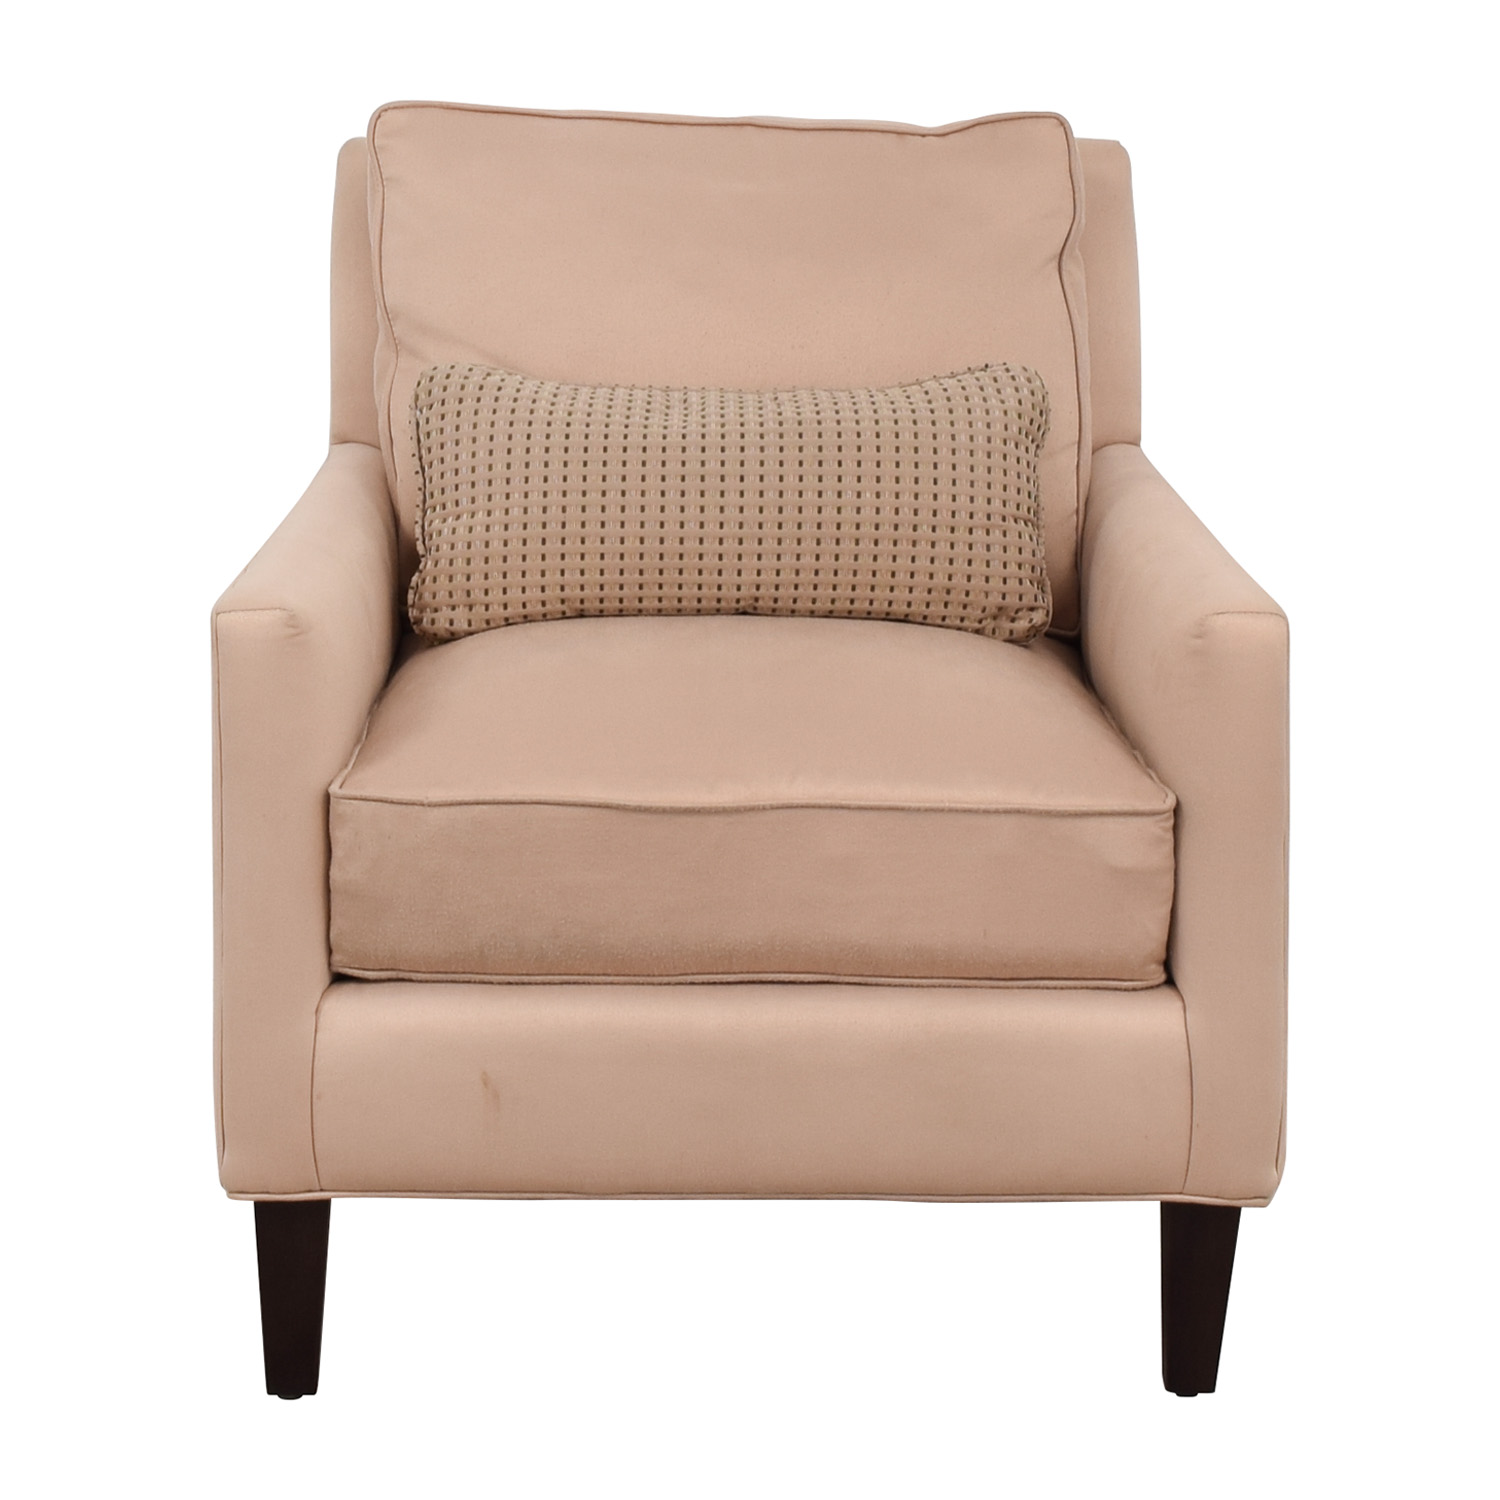 Thomasville Highlife Accent Chair sale